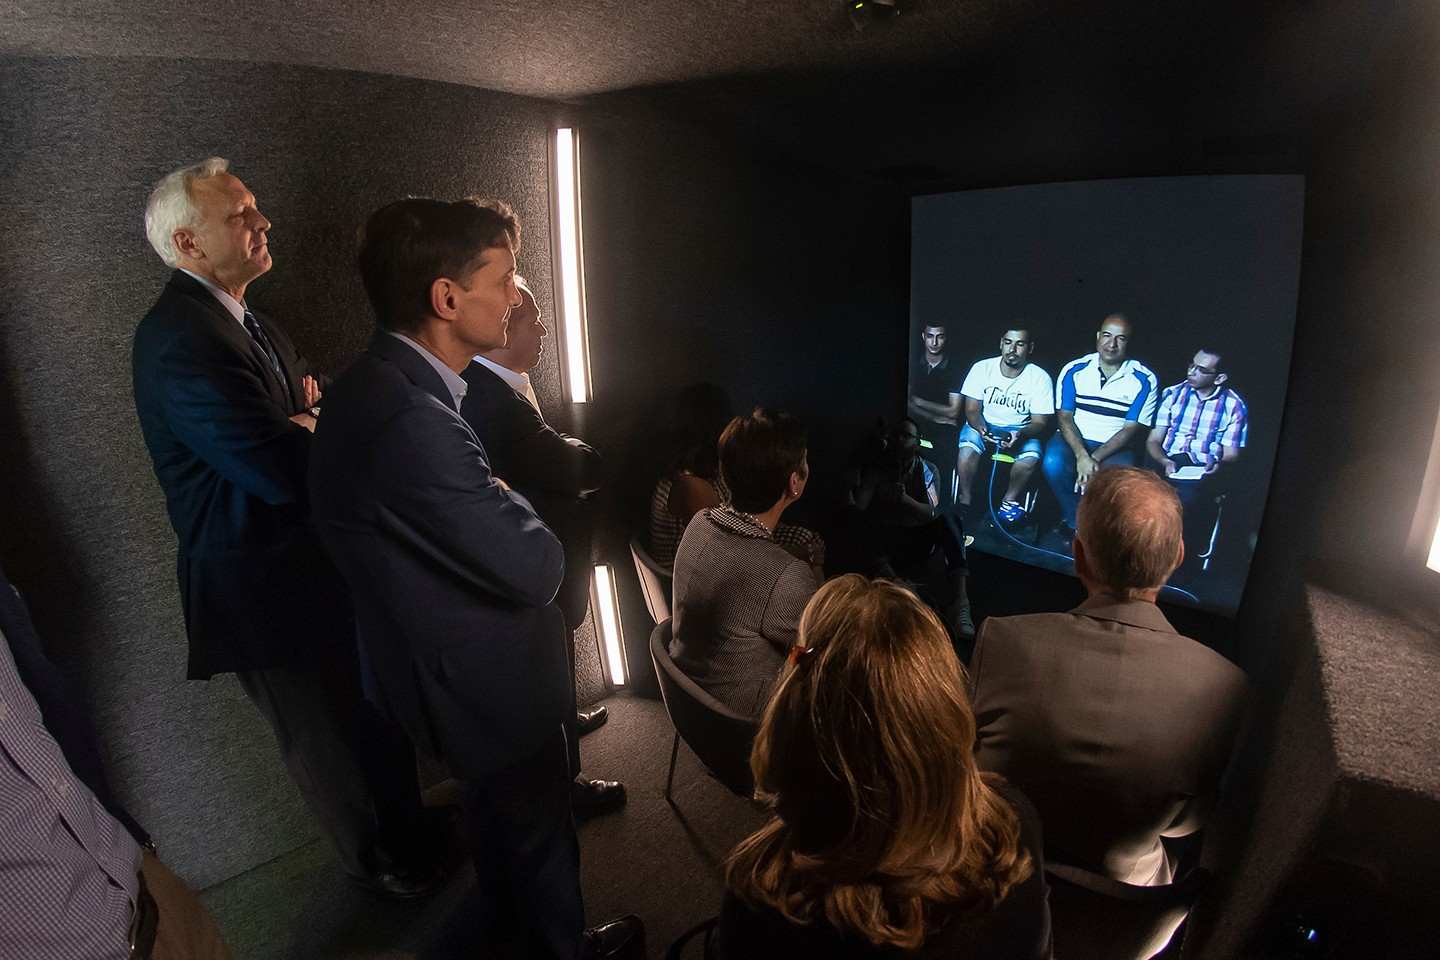 President Daniels and trustees stand in front of a screen